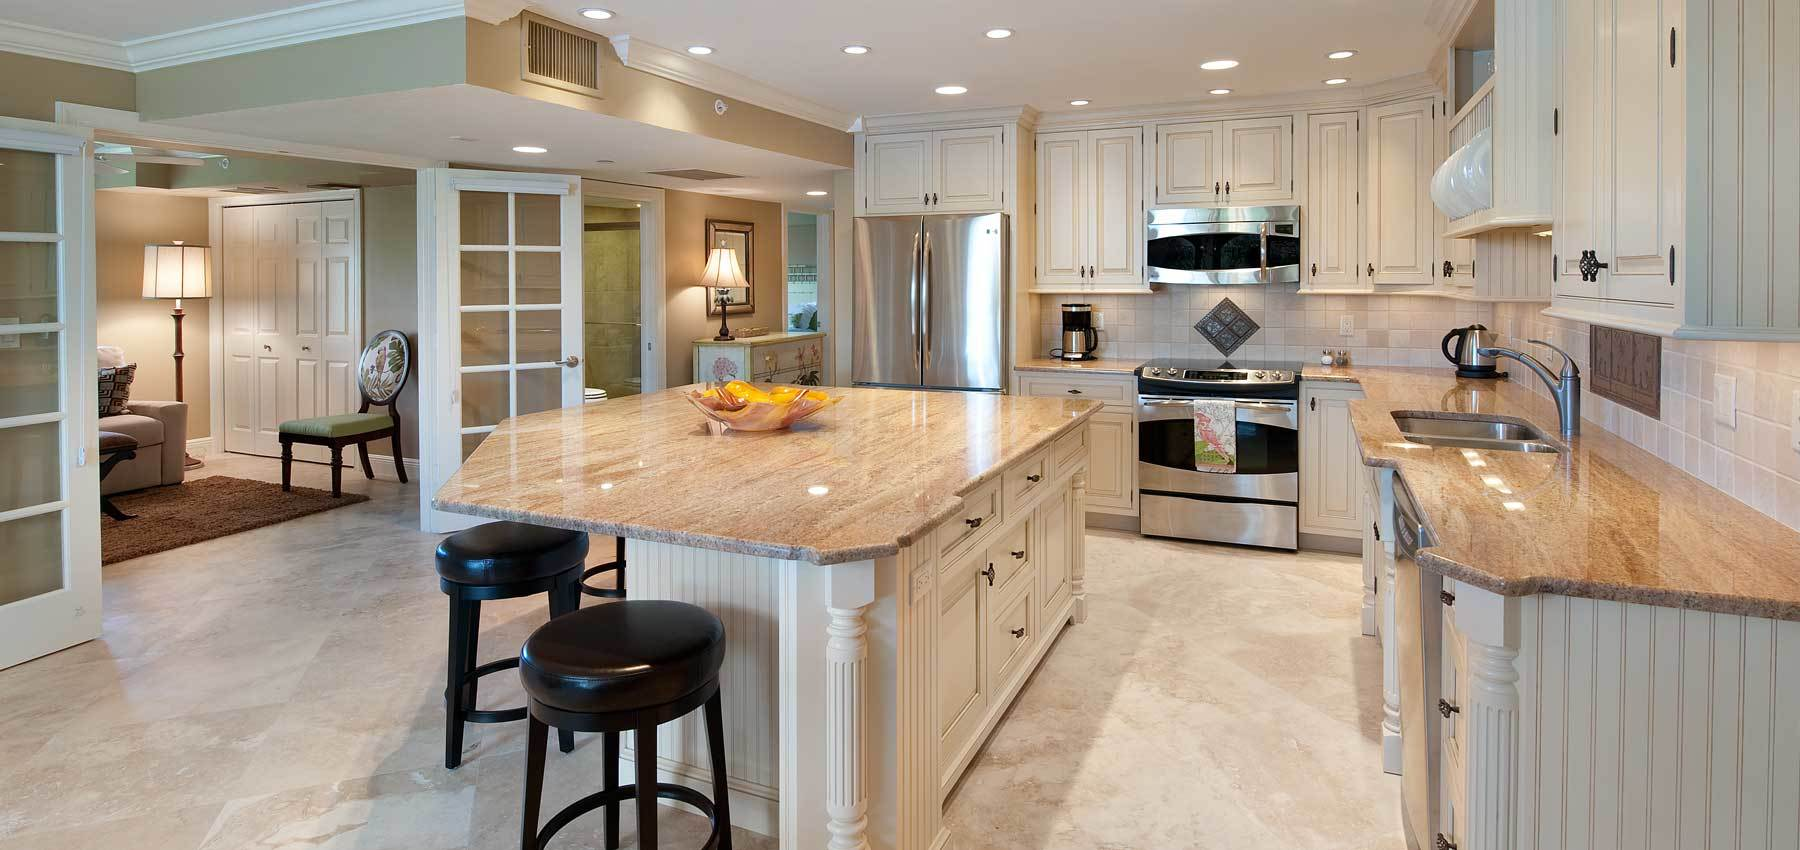 Enhance Your Cooking Space with Best Kitchen Renovations